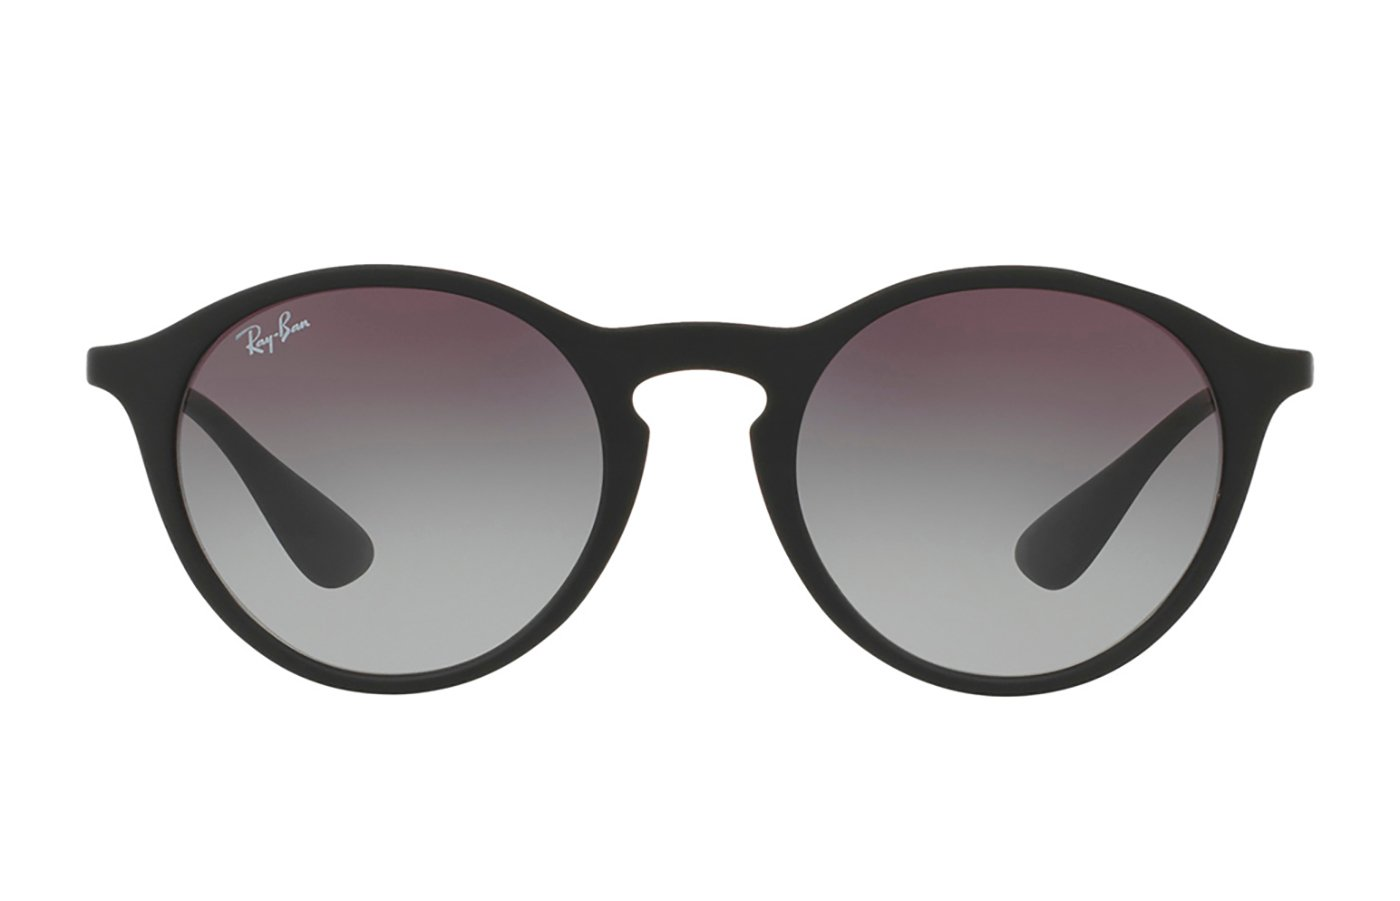 RAY-BAN 0RB4243 49 622/8G RUBBER BLACK